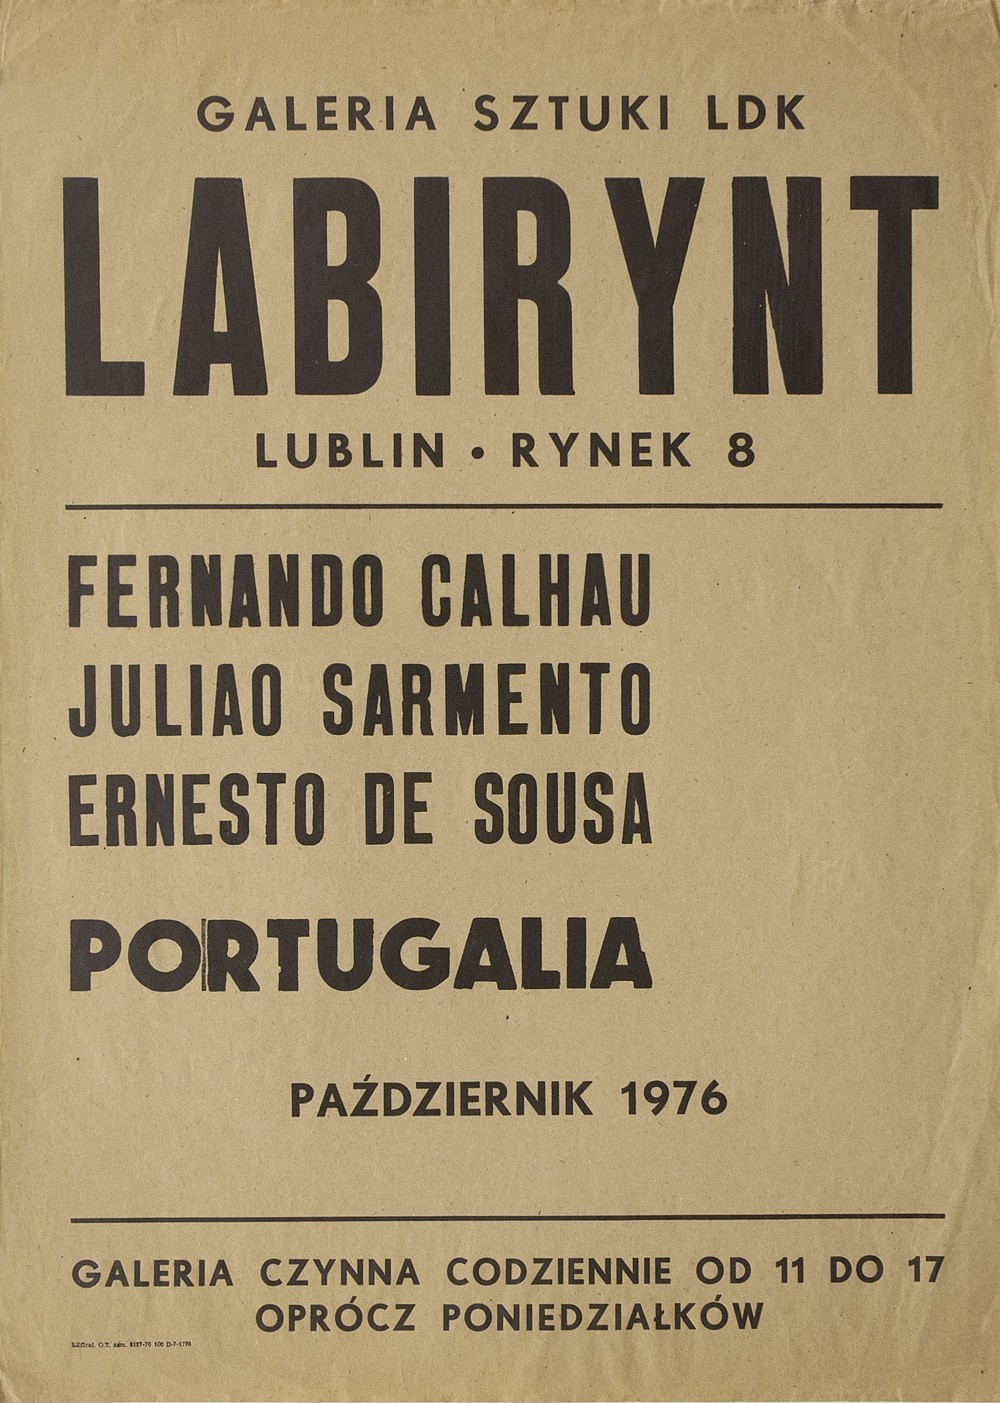 Poster of the exhibition at Galeria Labirynt, in Lublin, Poland, 1976.